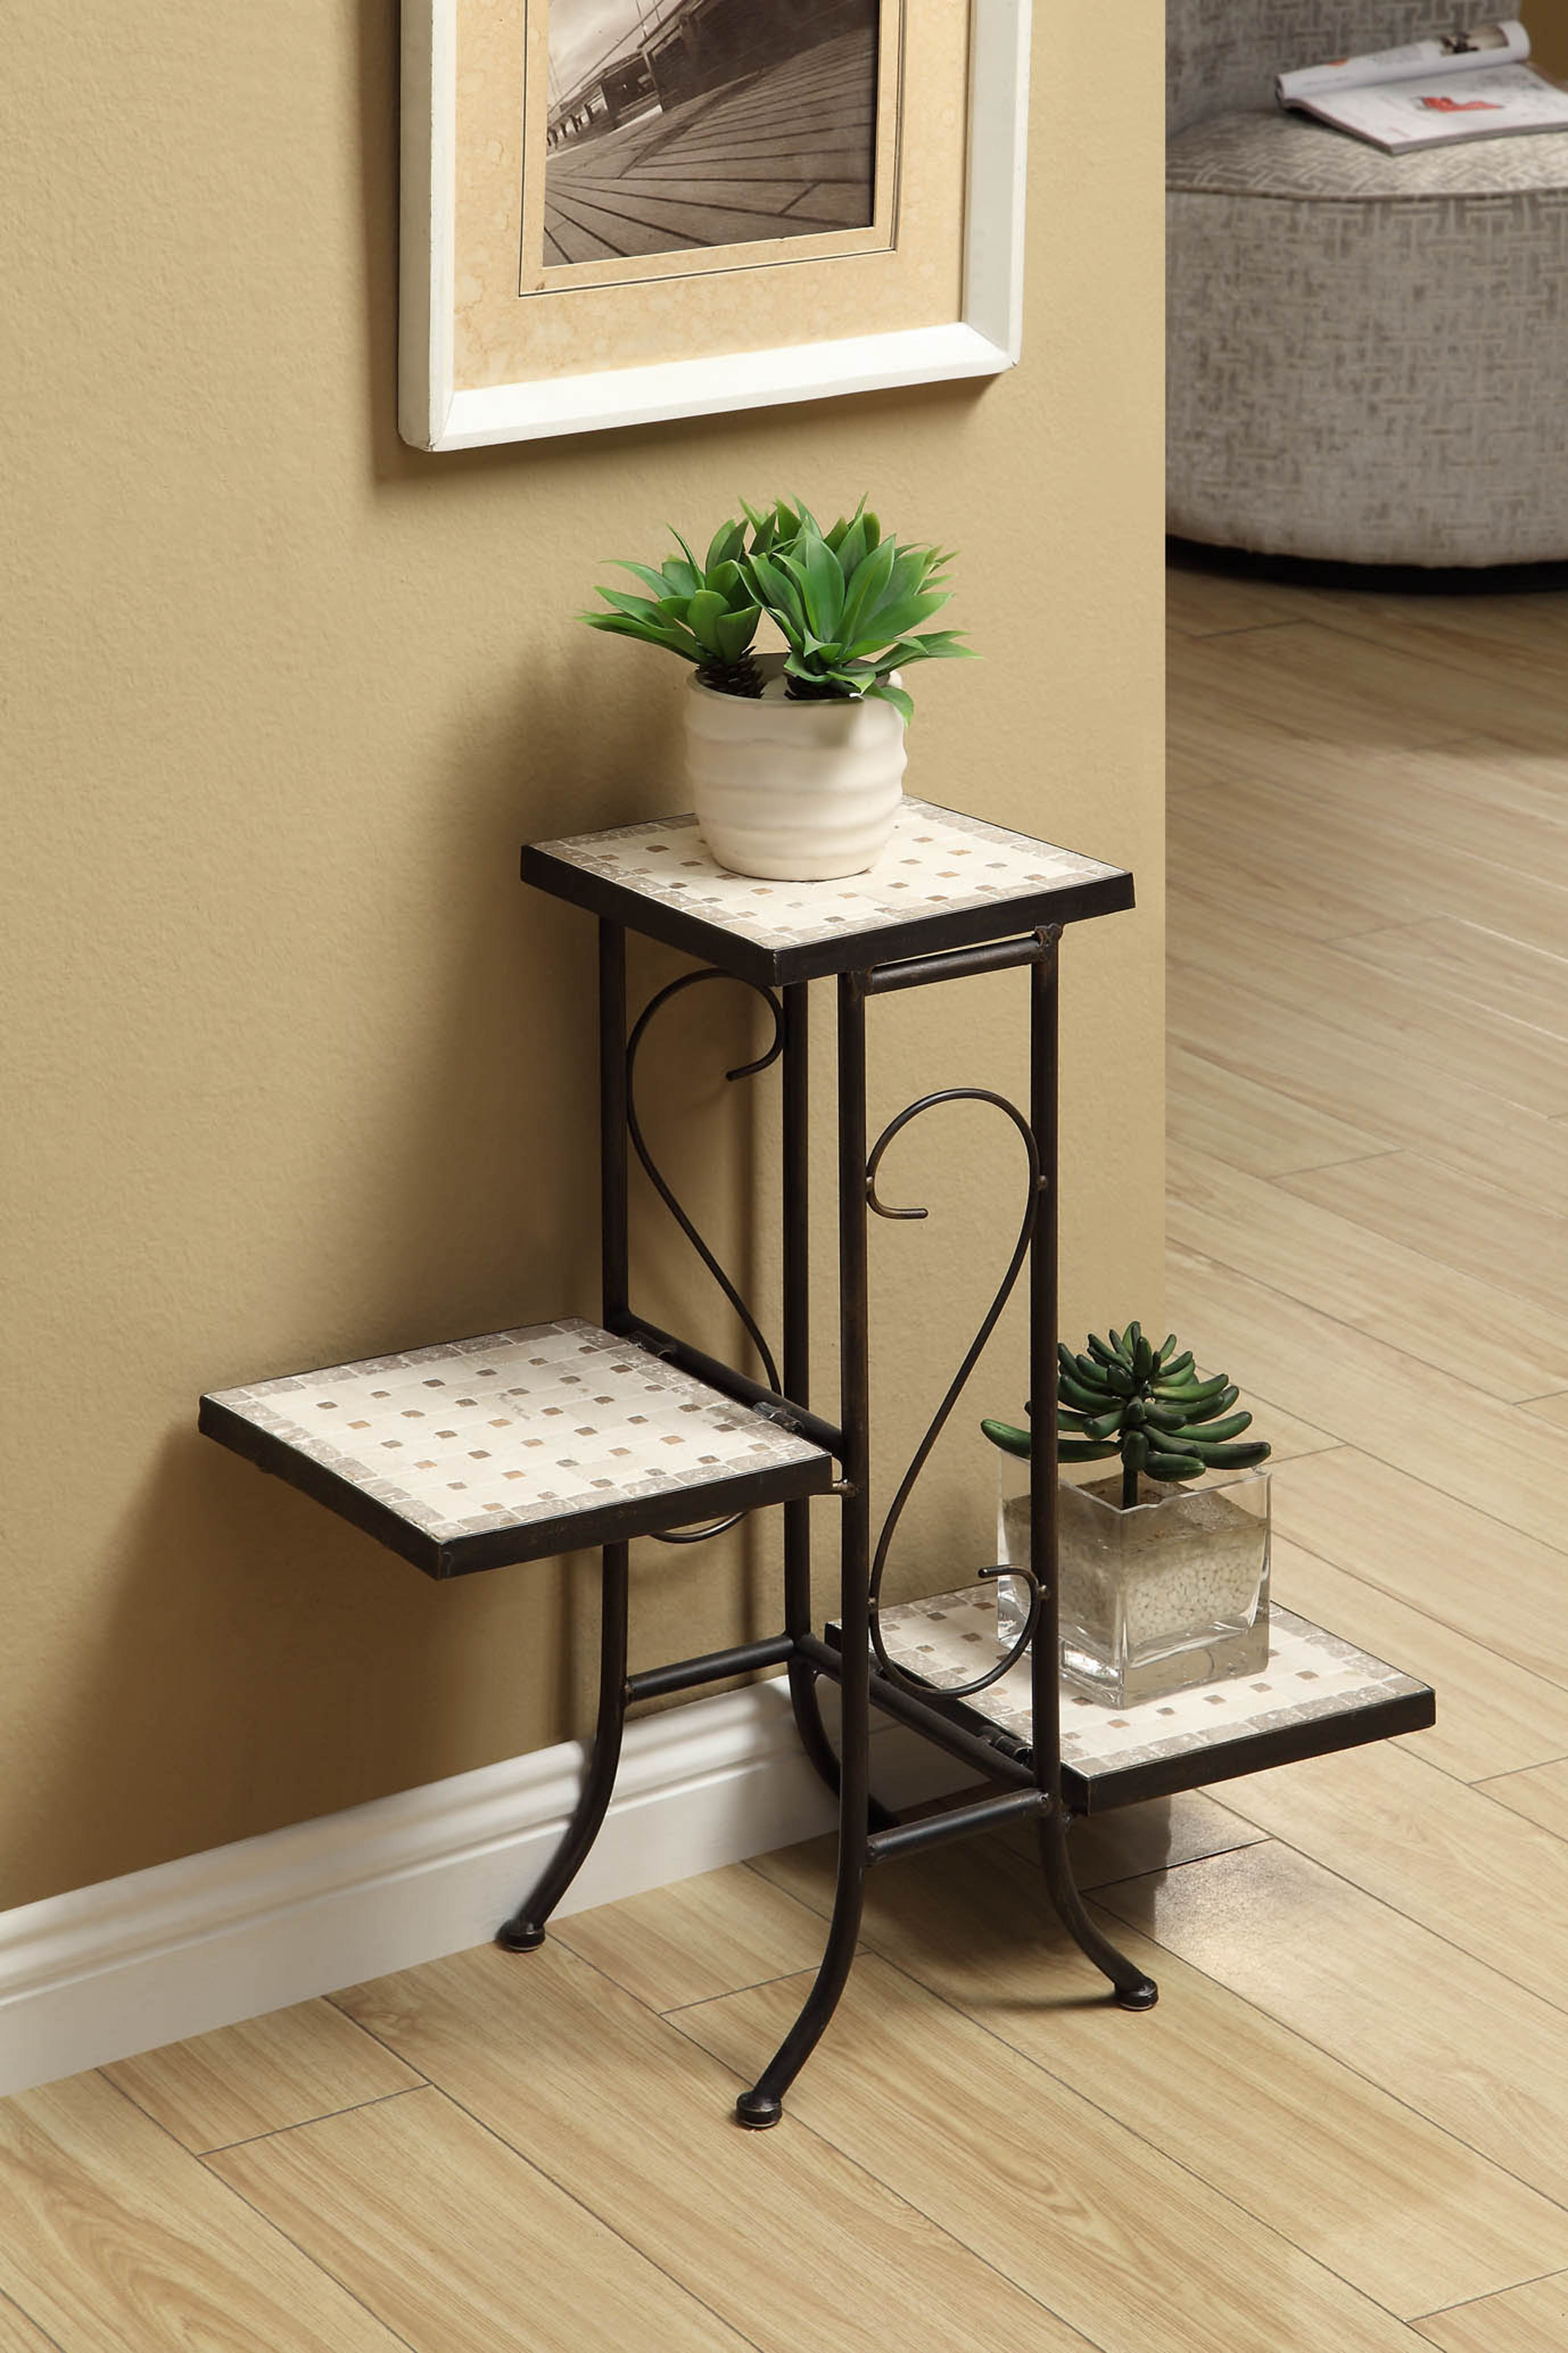 Tiered Plant Holders Tiered Plant Stands Bing Images